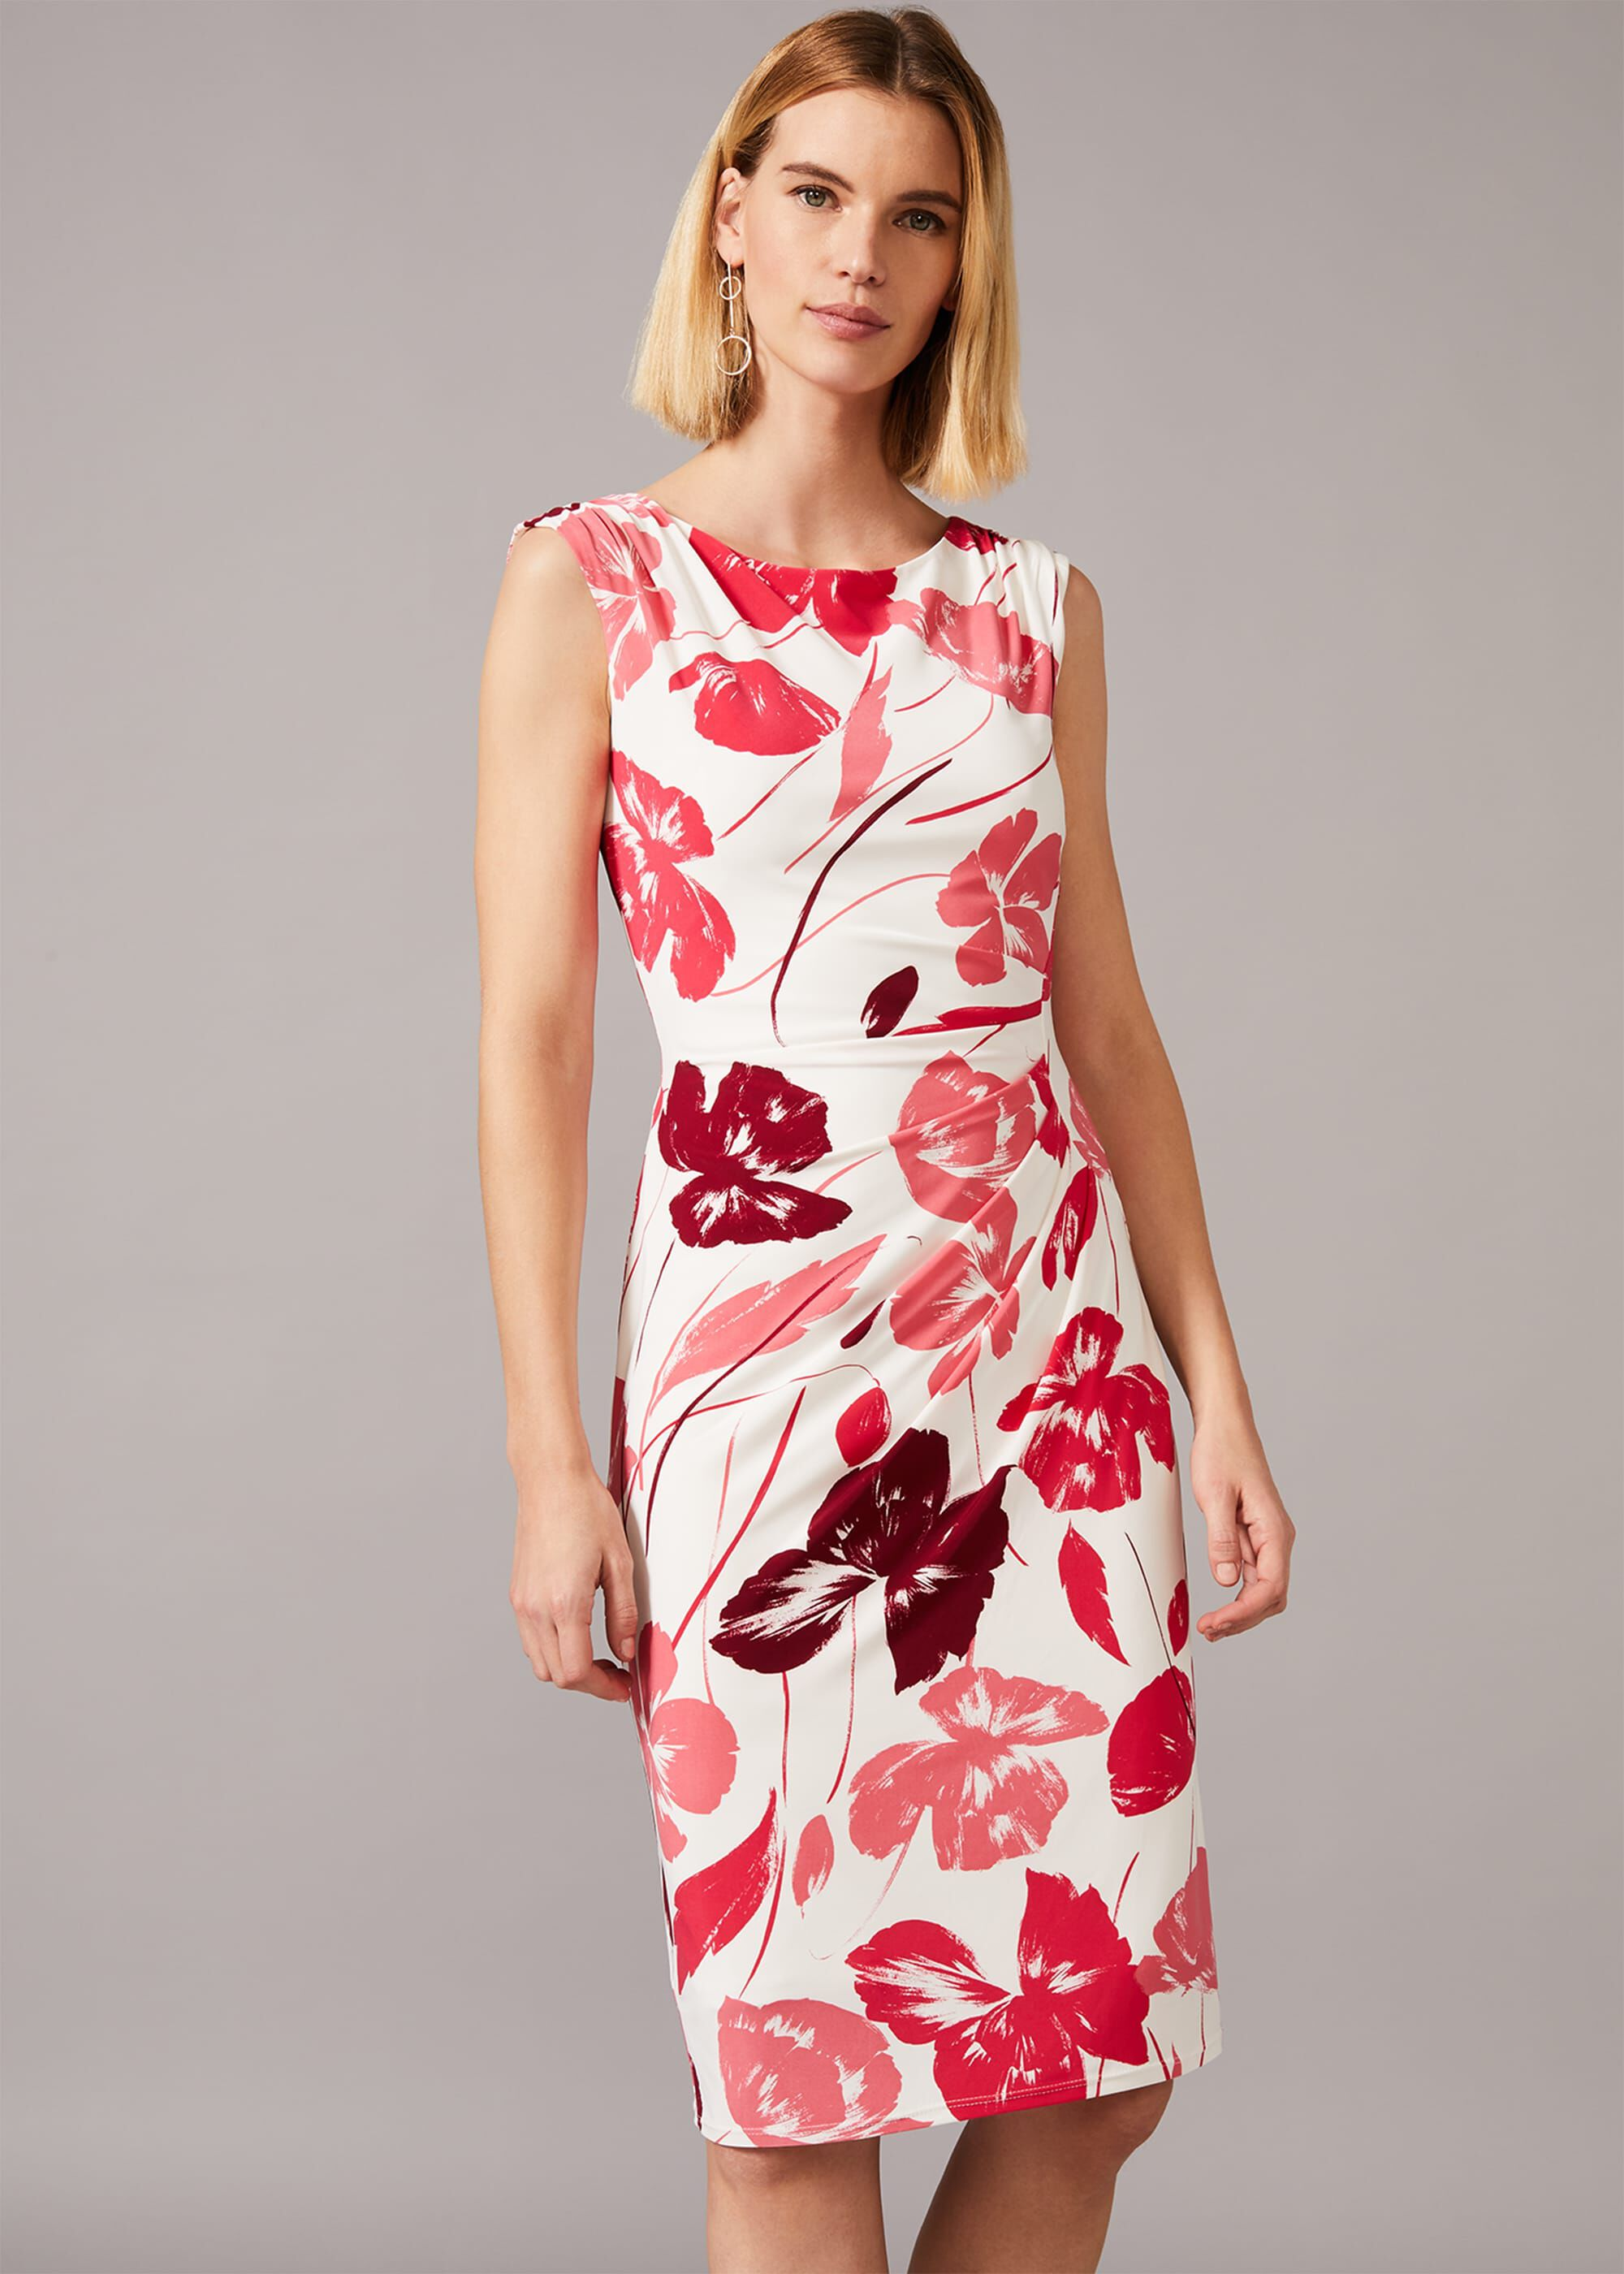 Phase Eight Alexi Floral Jersey Dress, Cream, Fitted, Occasion Dress